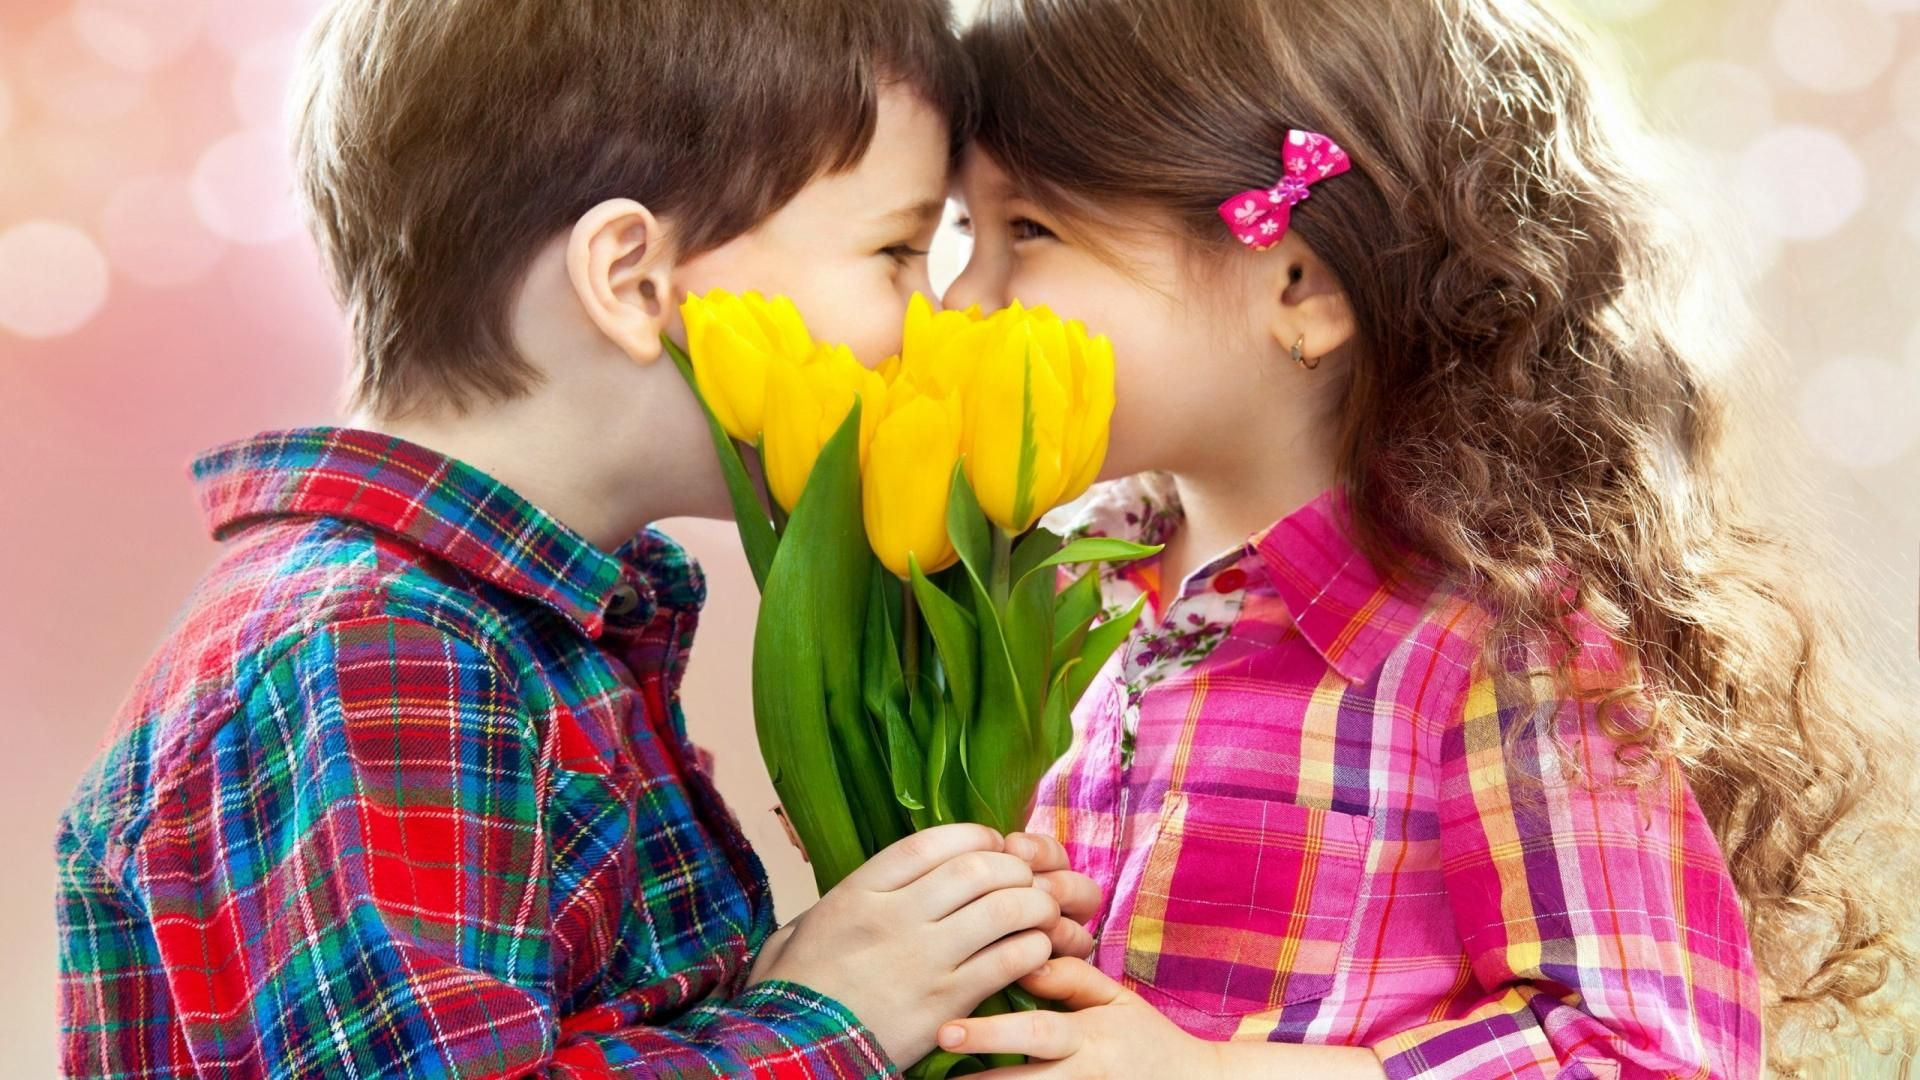 Wallpaper download girl and boy - Stylish Boy And Girl Romantic Wallpapers Find Best Latest Stylish Boy And Girl Romantic Wallpapers